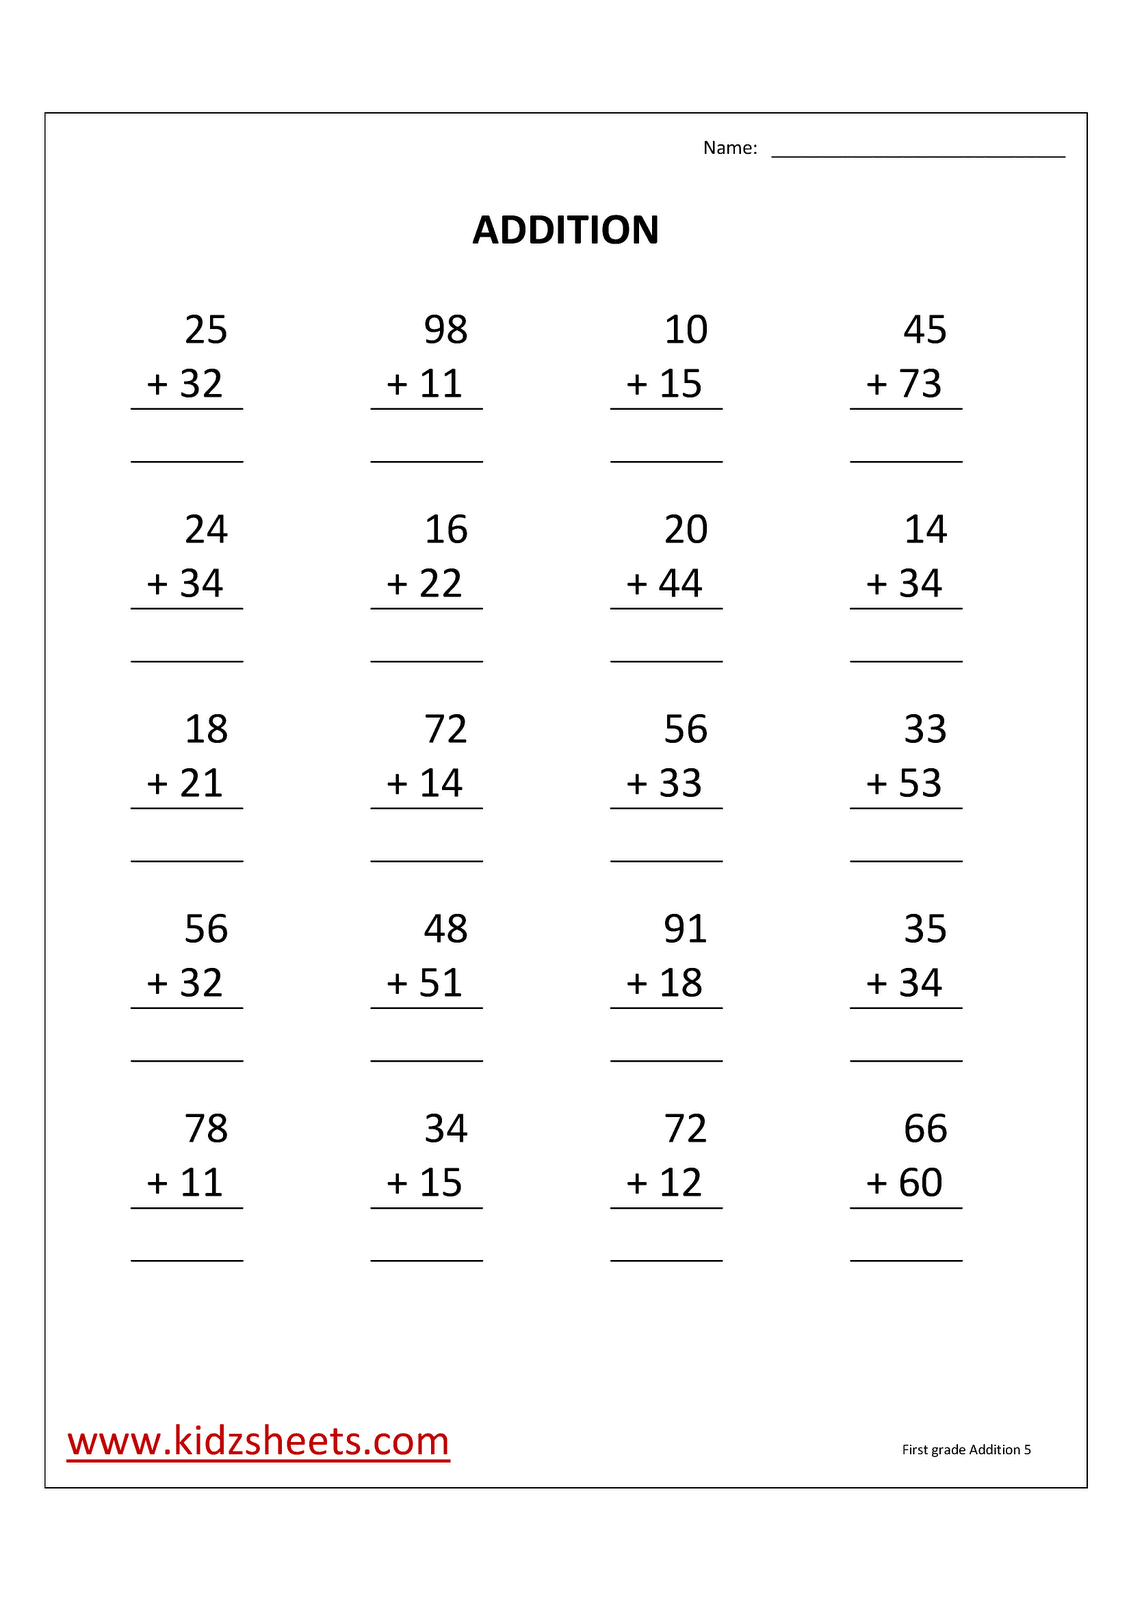 Addition Worksheet For Grade 4